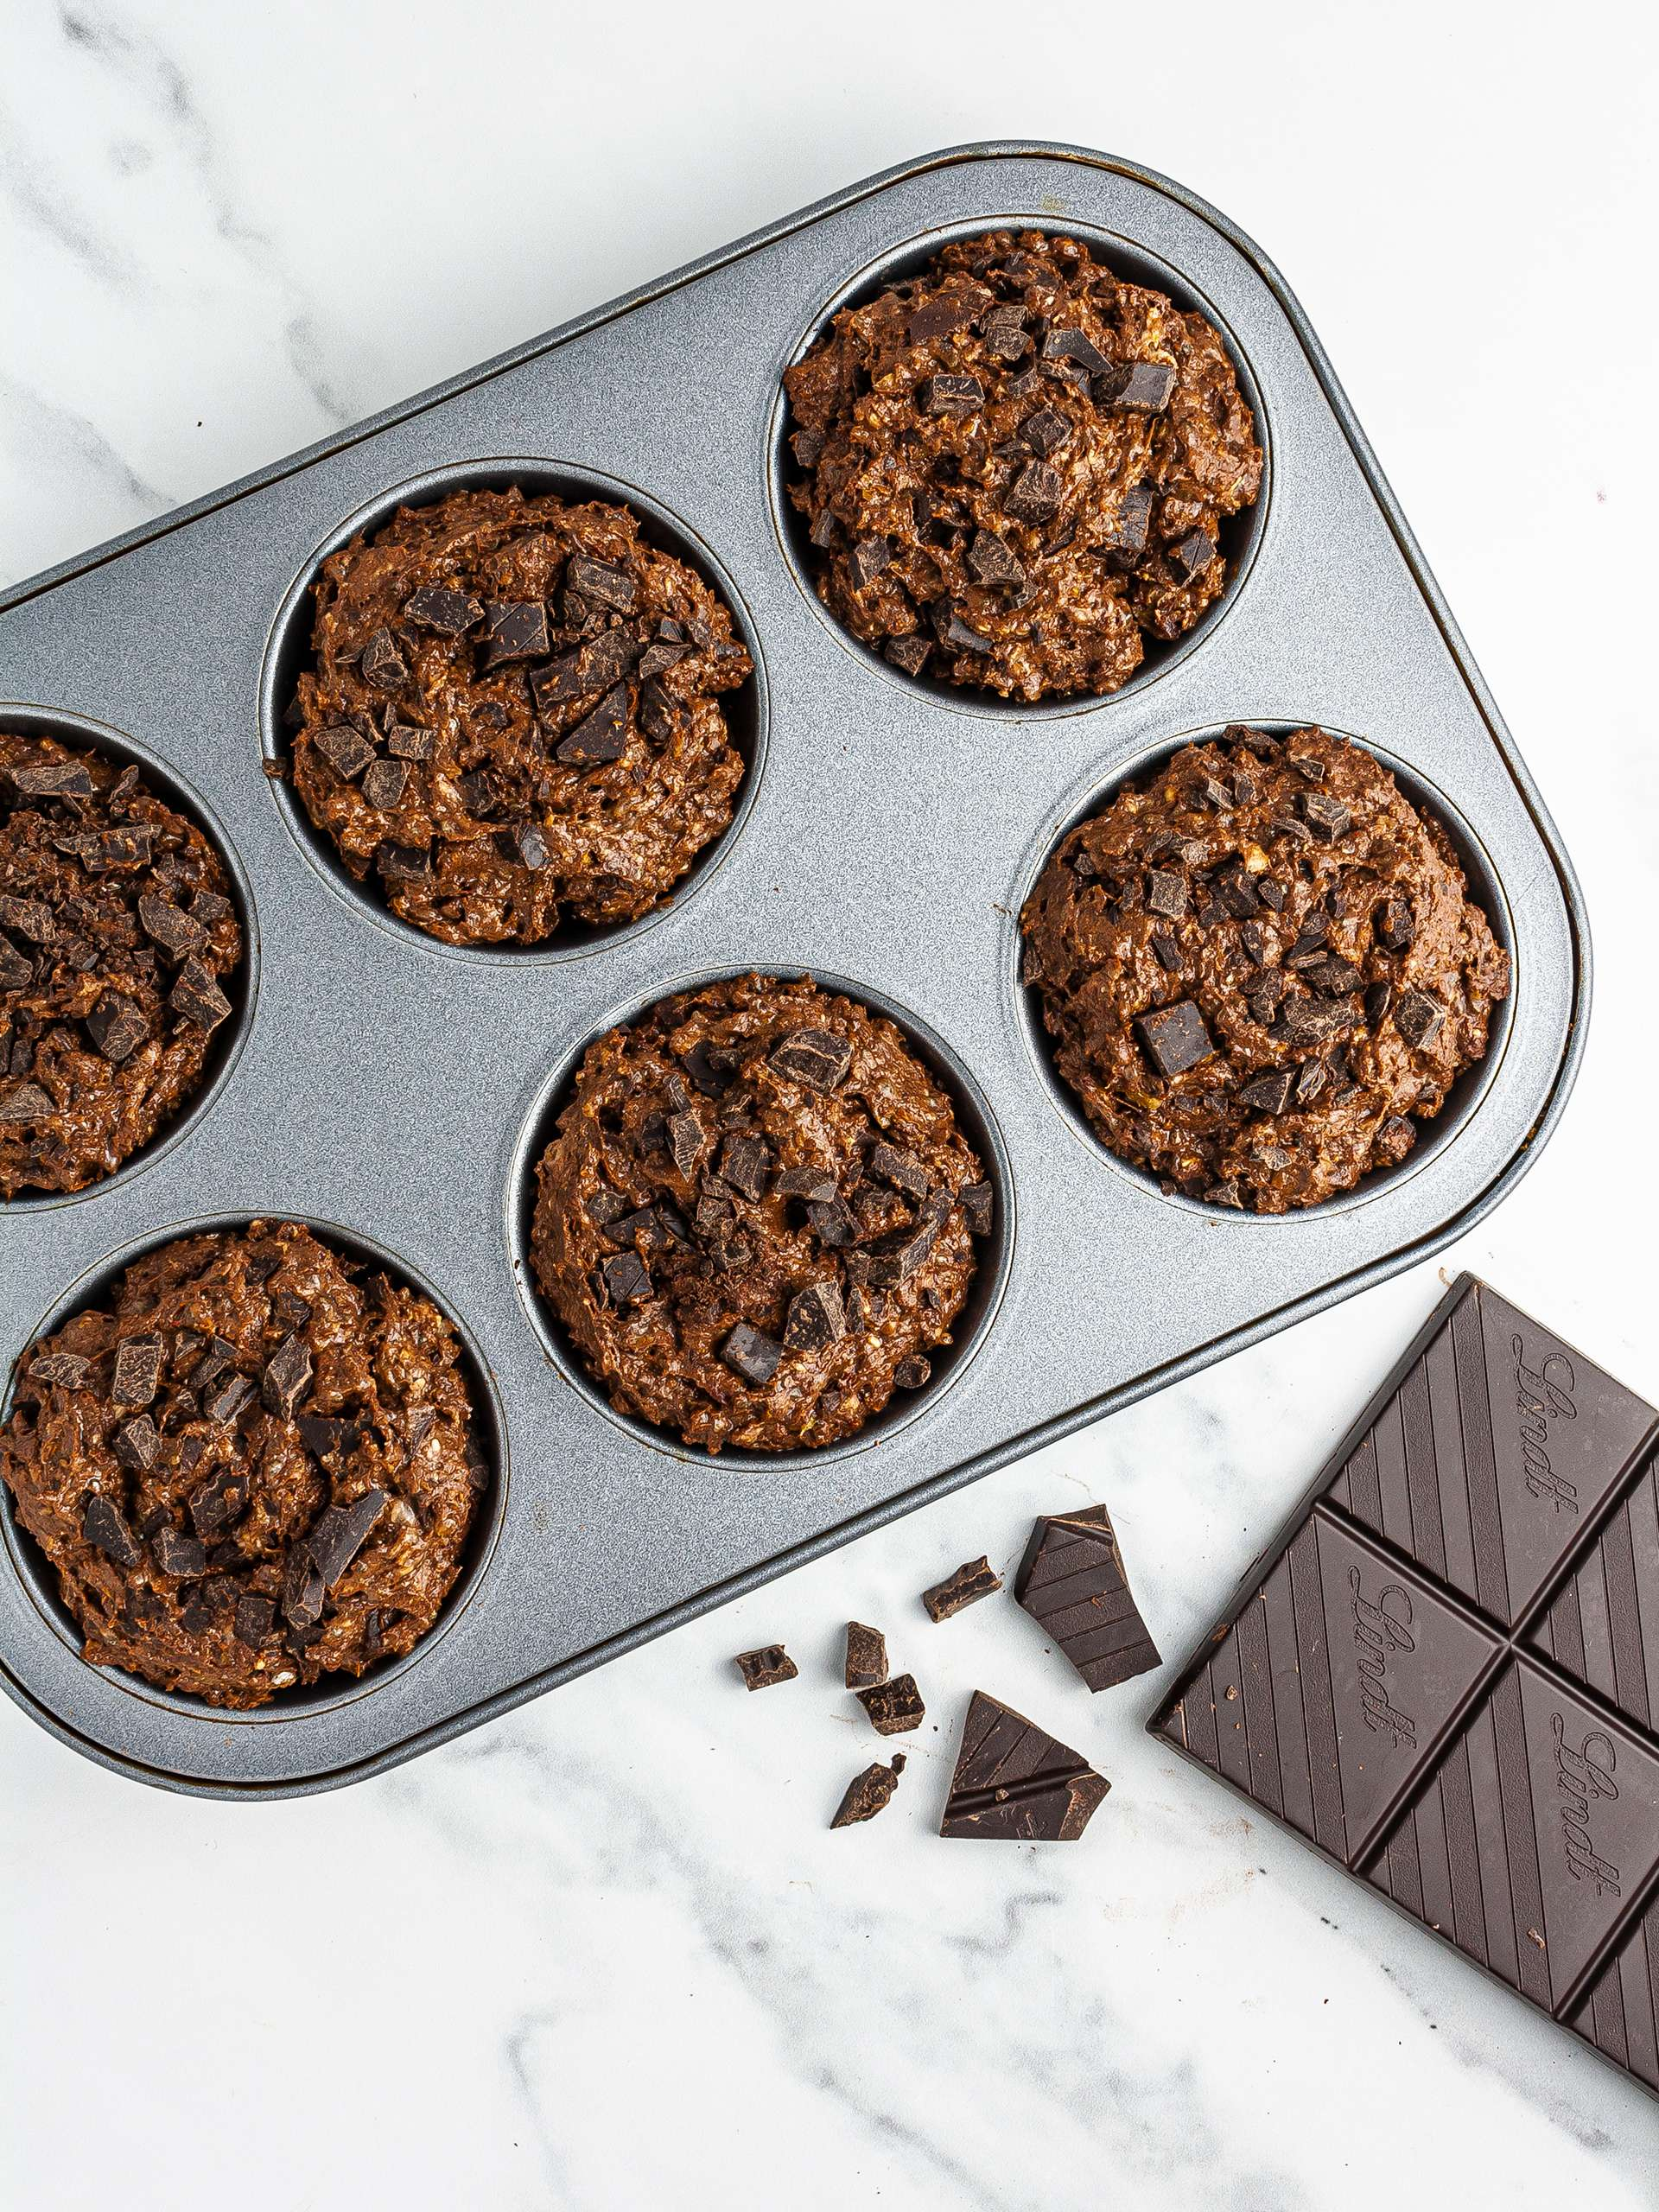 Muffin dough in baking tray with chocolate chips